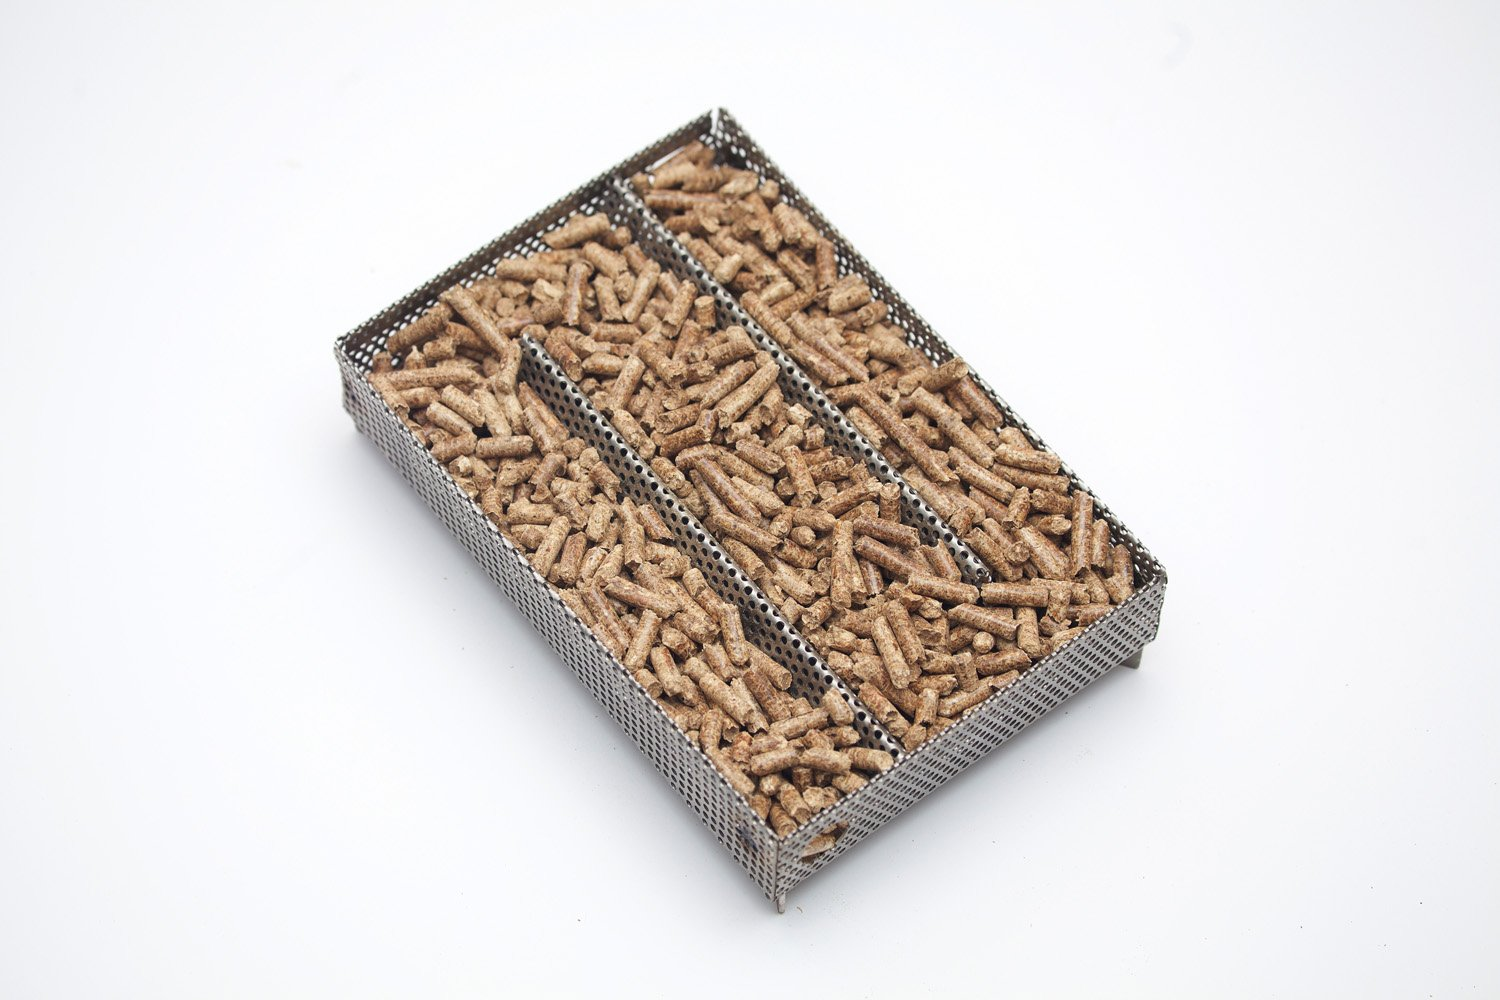 A-MAZE-N Maze 5'' L x 8'' W Pellet Smoker Prefilled With 100% Wood Hickory BBQ Pellets by A-MAZE-N (Image #2)